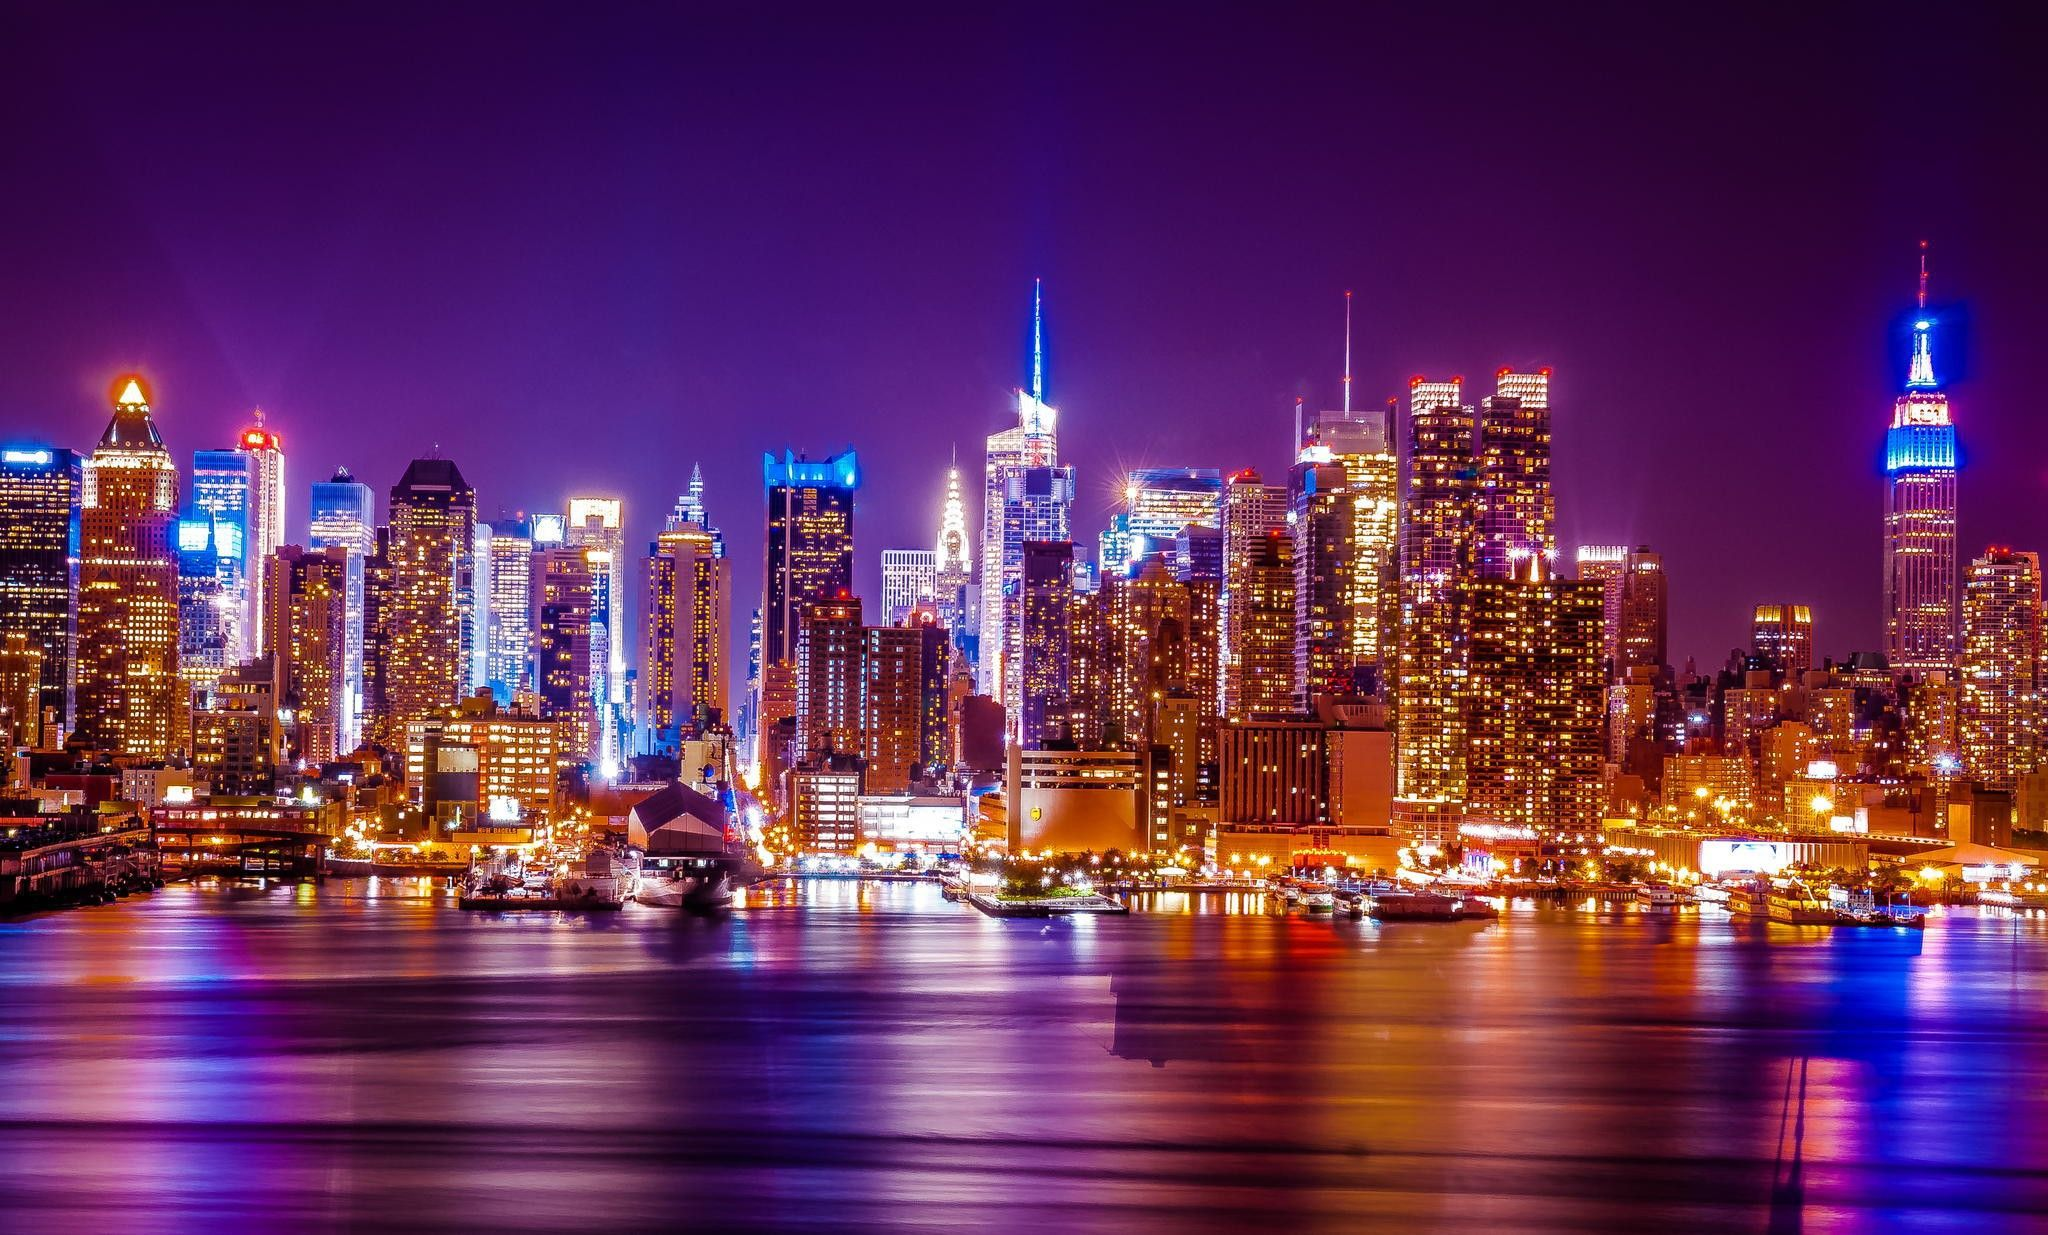 New York City Wallpapers HD Pictures Wallpaper New York - City lights wallpaper for bedroom